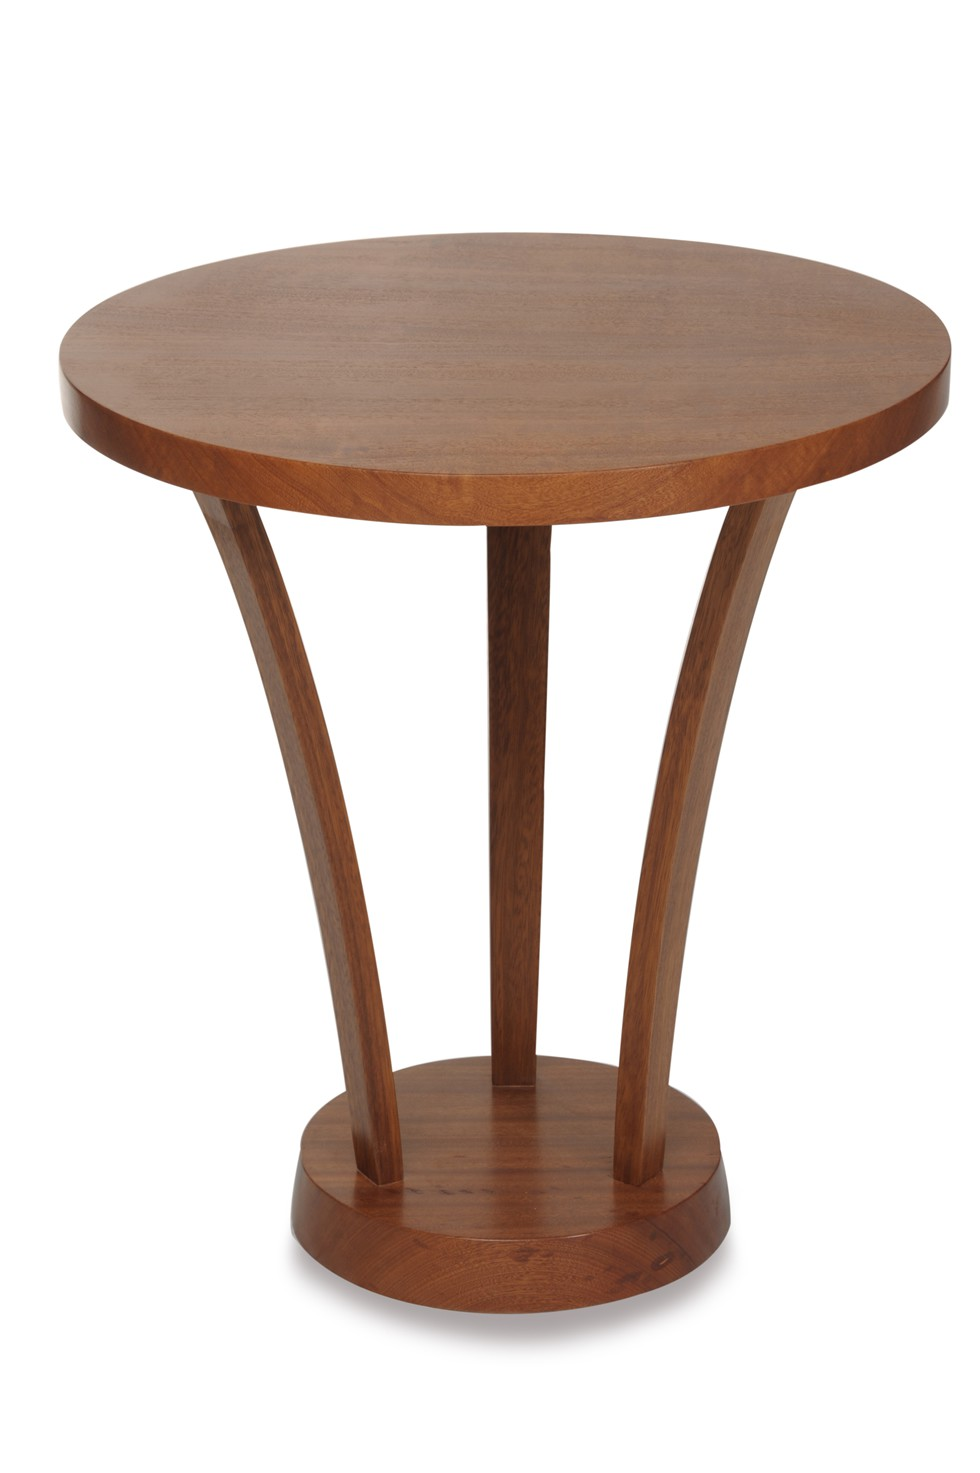 Palmier 3 leg table